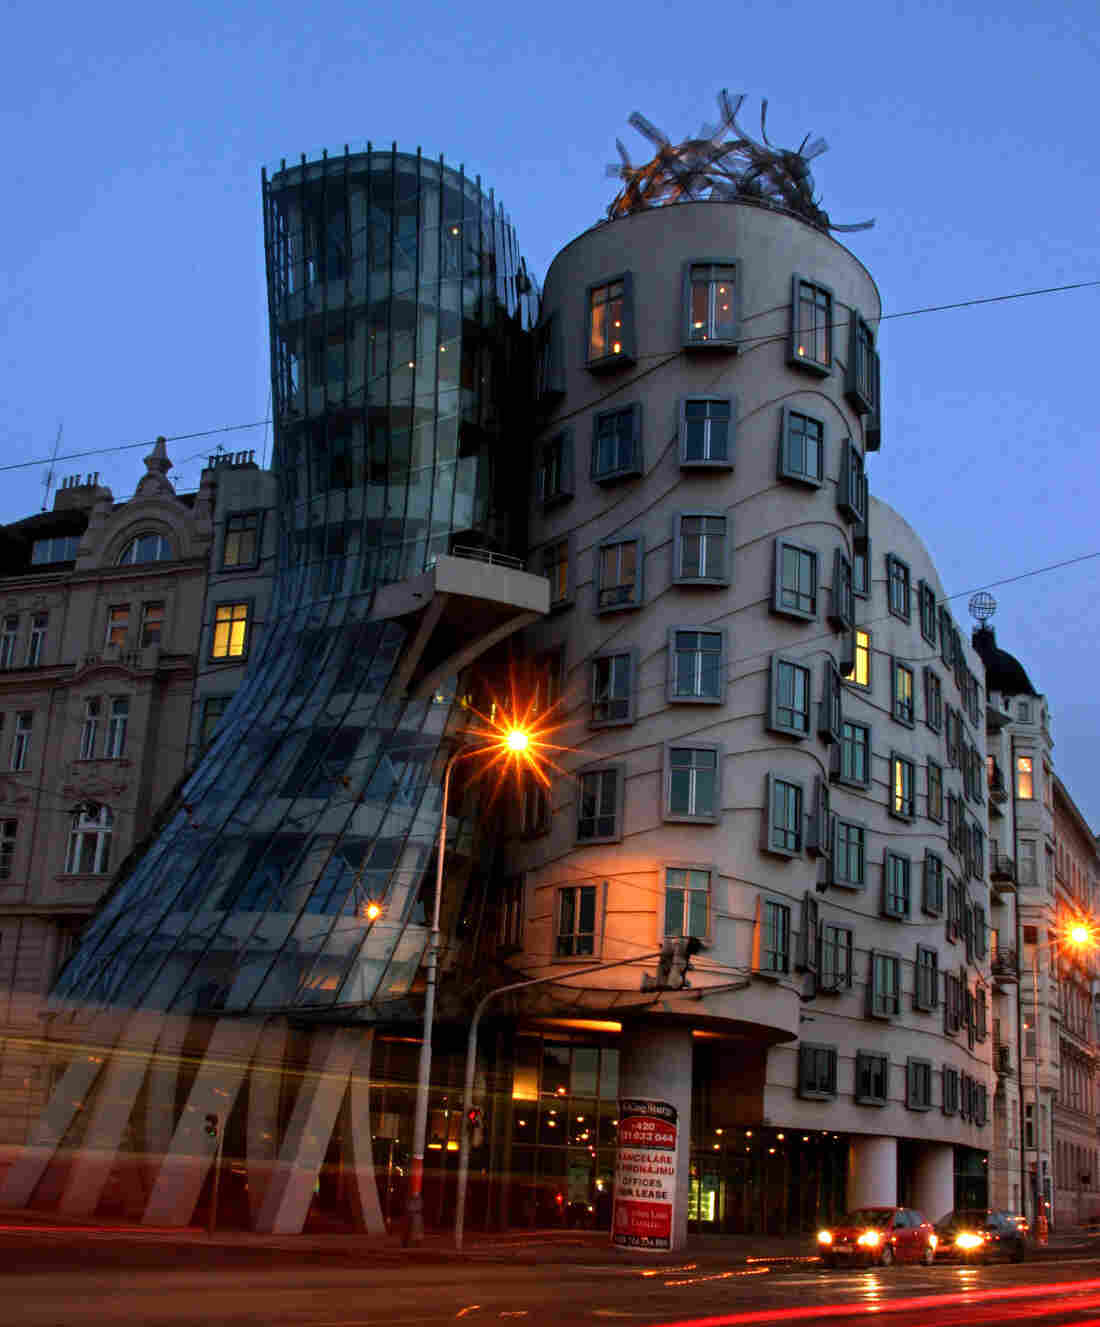 """The """"Fred And Ginger"""" dancing building in Prague, Czech Republic"""